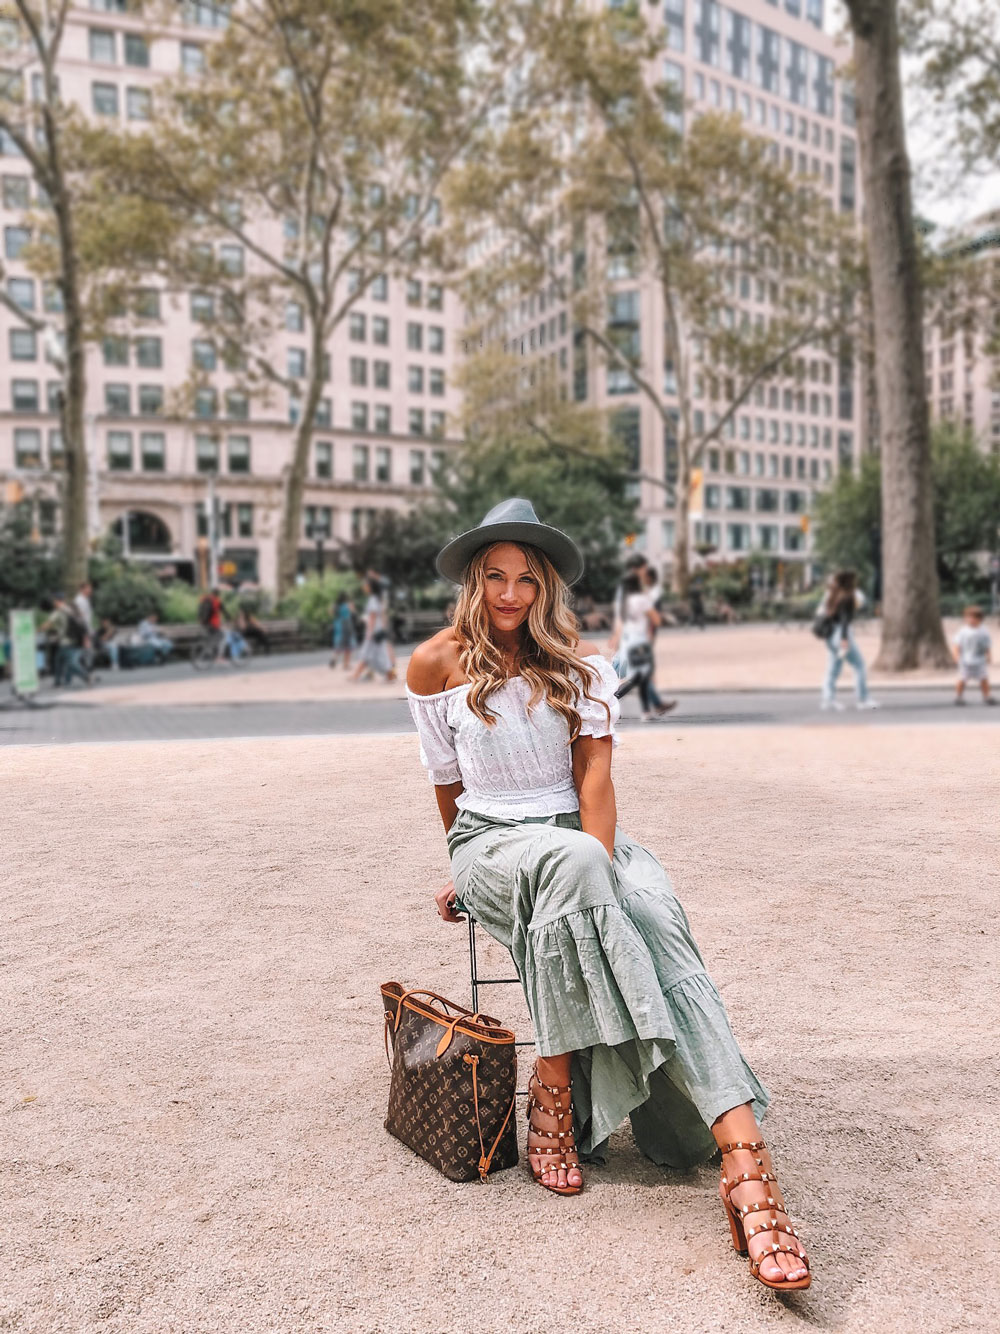 Oklahoma blogger Amanda Martin wearing a boho chic wide leg pant and white crop top while traveling in NYC